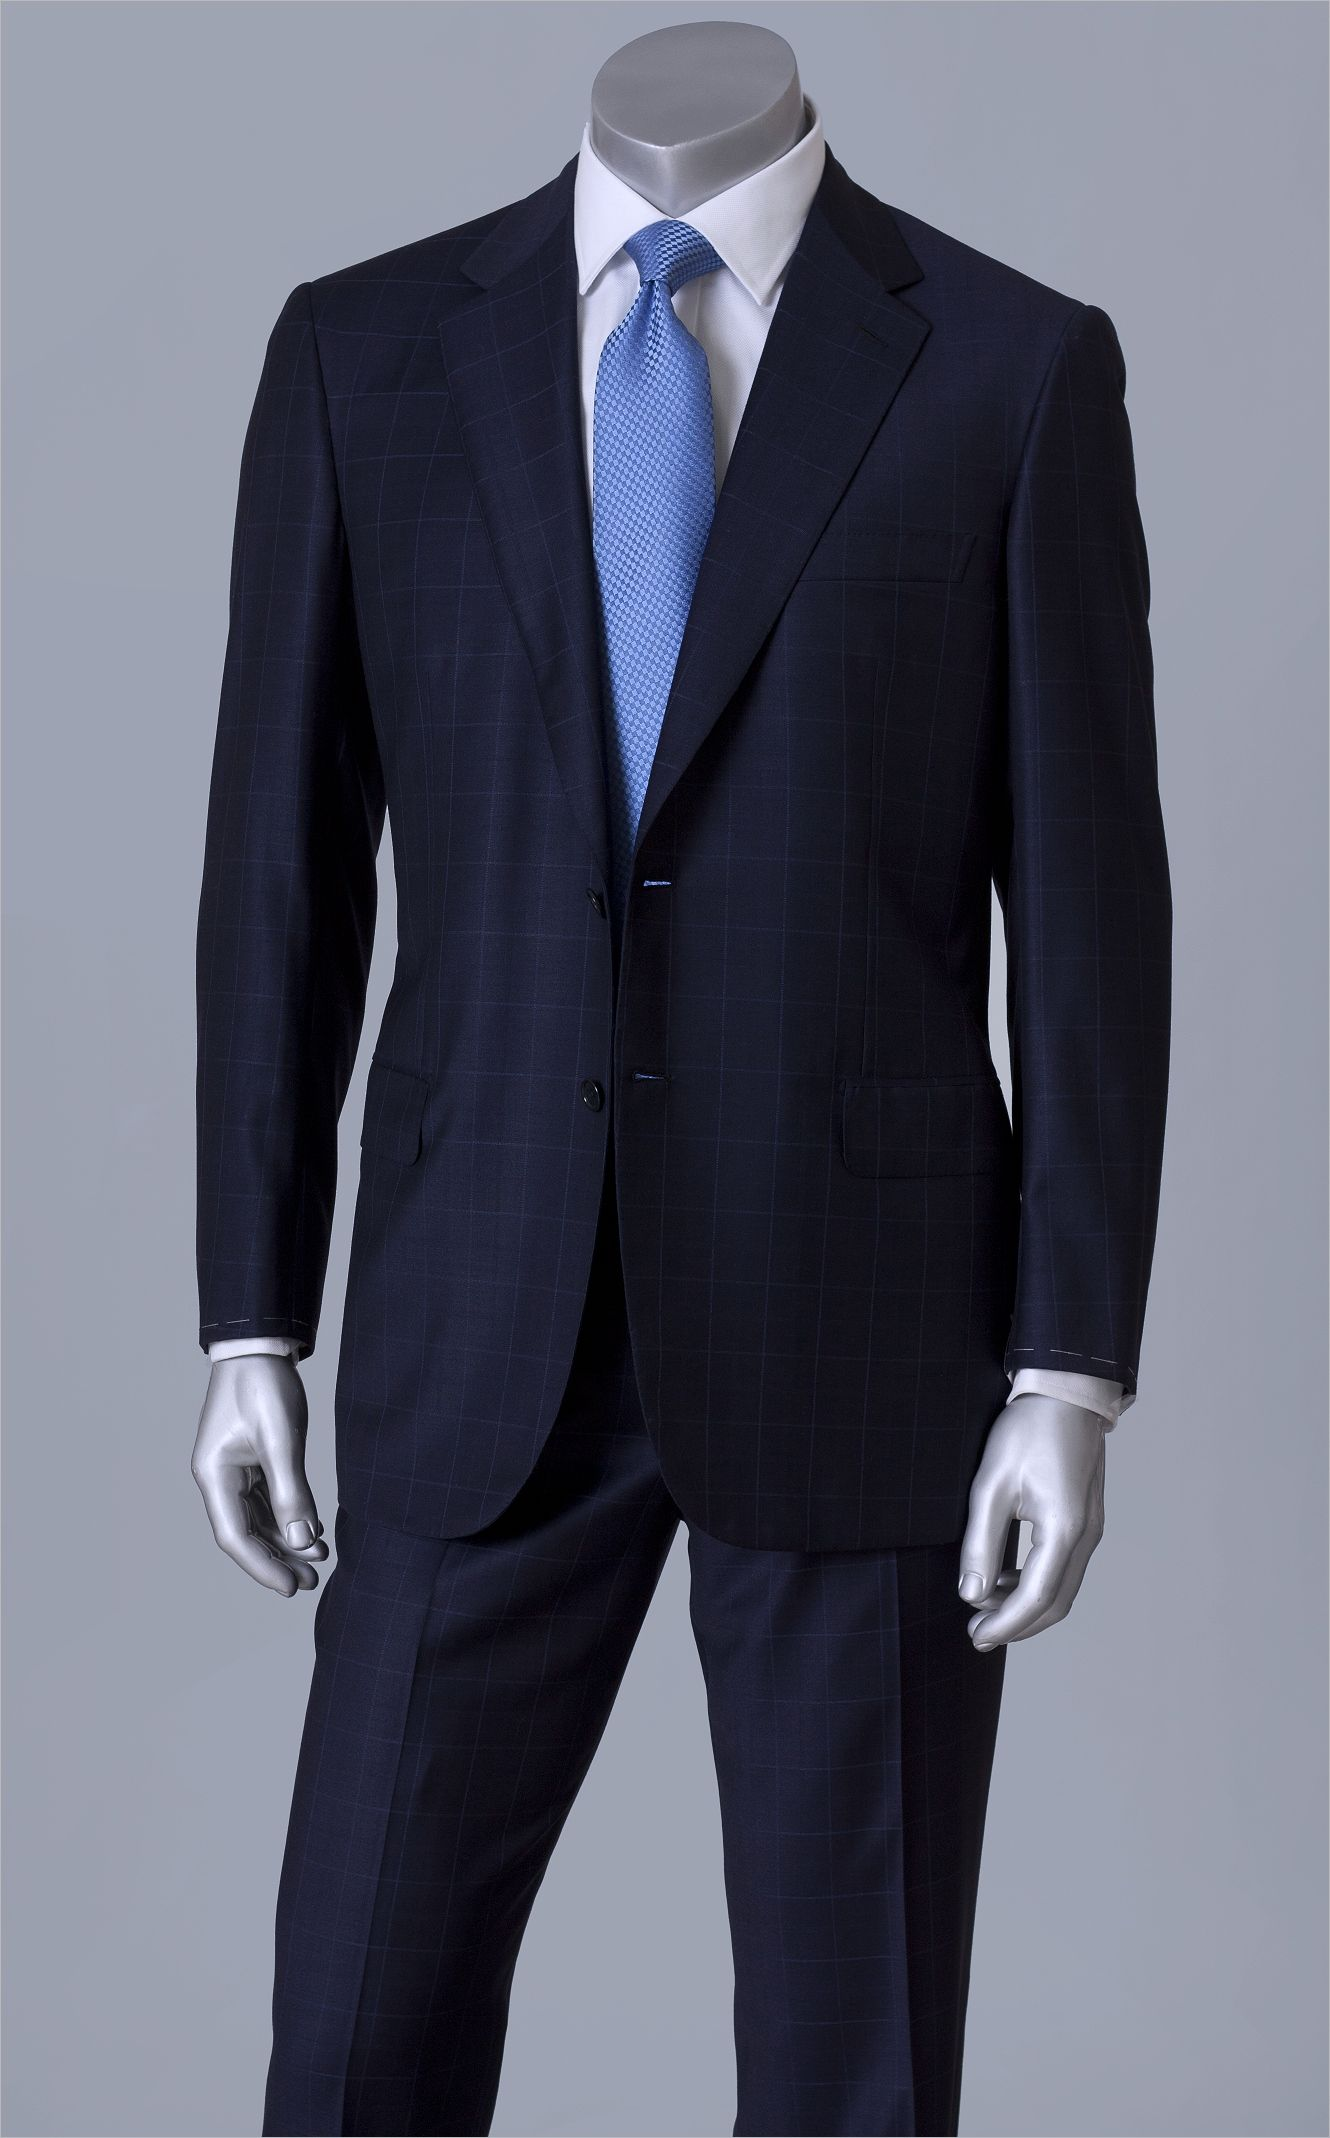 Brioni Dark Navy Suit Available As I Guess For 6500 Usd Suit Fashion Navy Suit Mens Fashion Suits